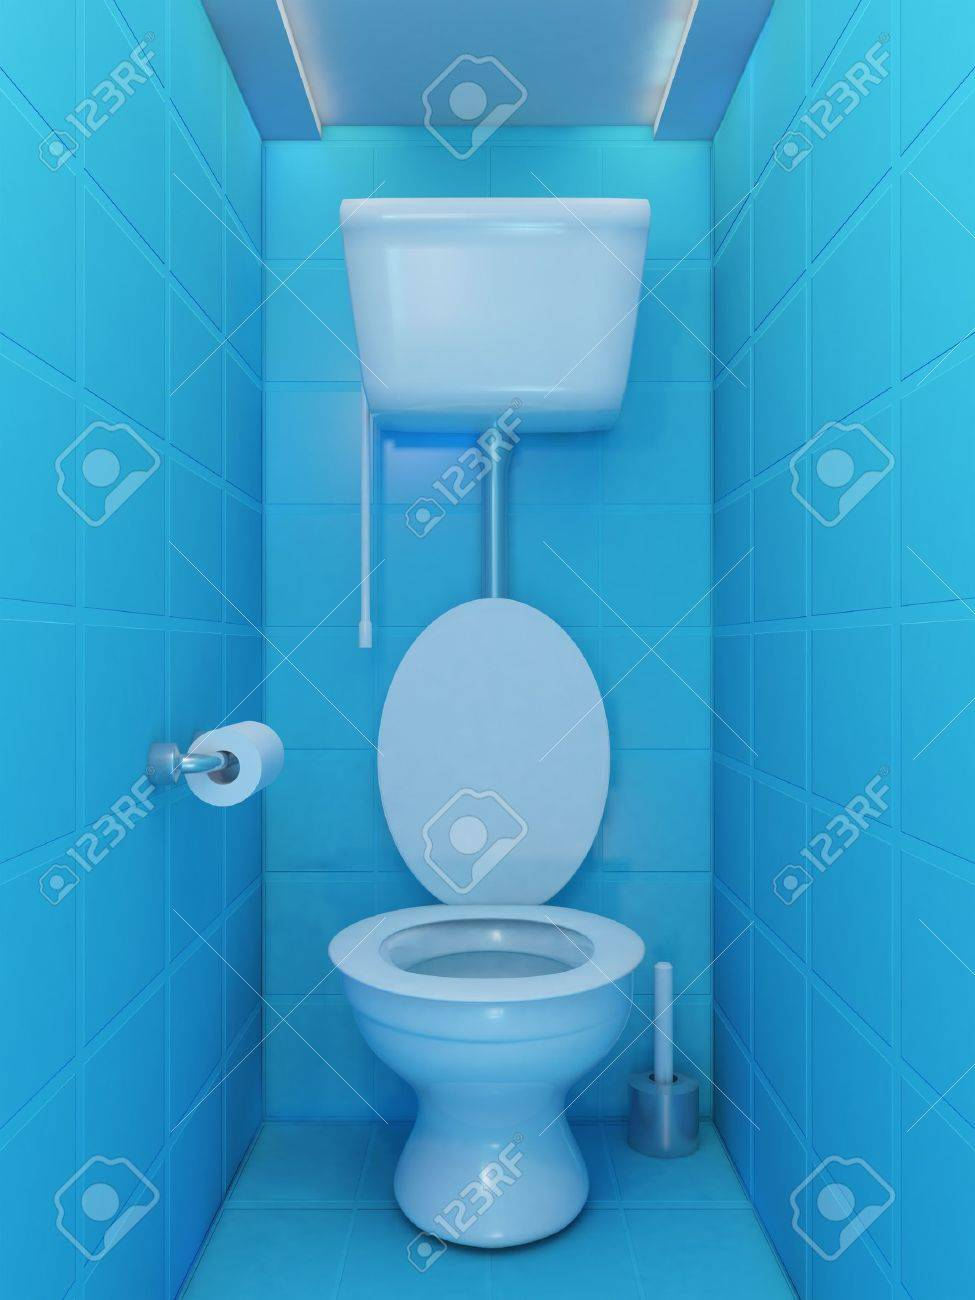 Interior Of Toilet Room In Blue Colors Stock Photo Picture And Royalty Free Image Image 10025148